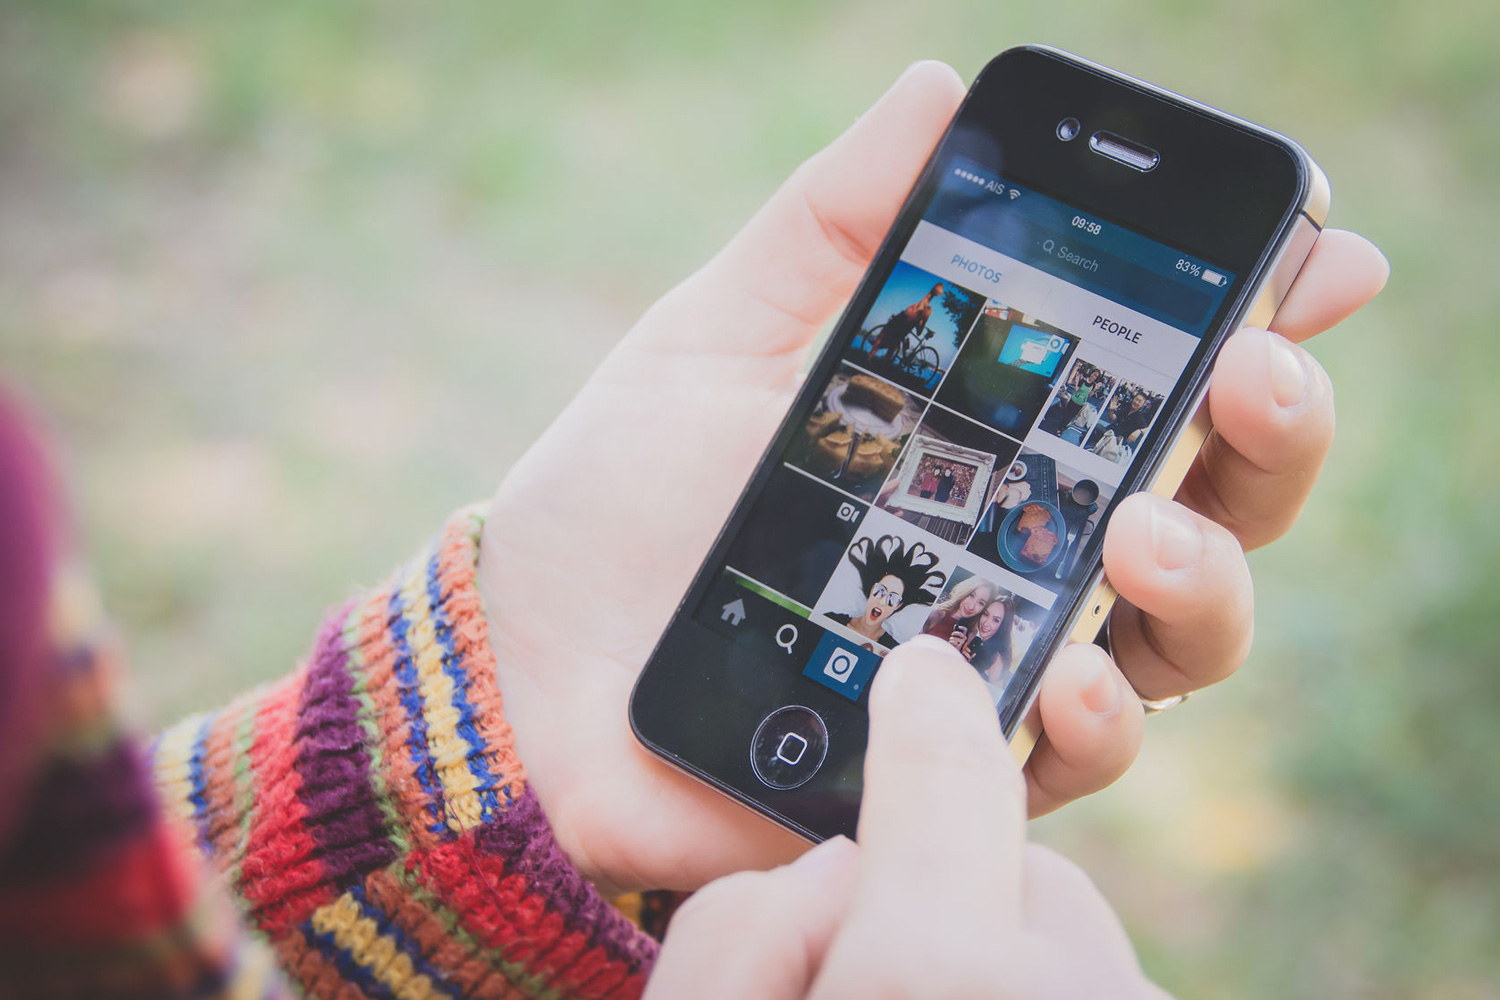 Instagram doubles down on security with two-factor authentication